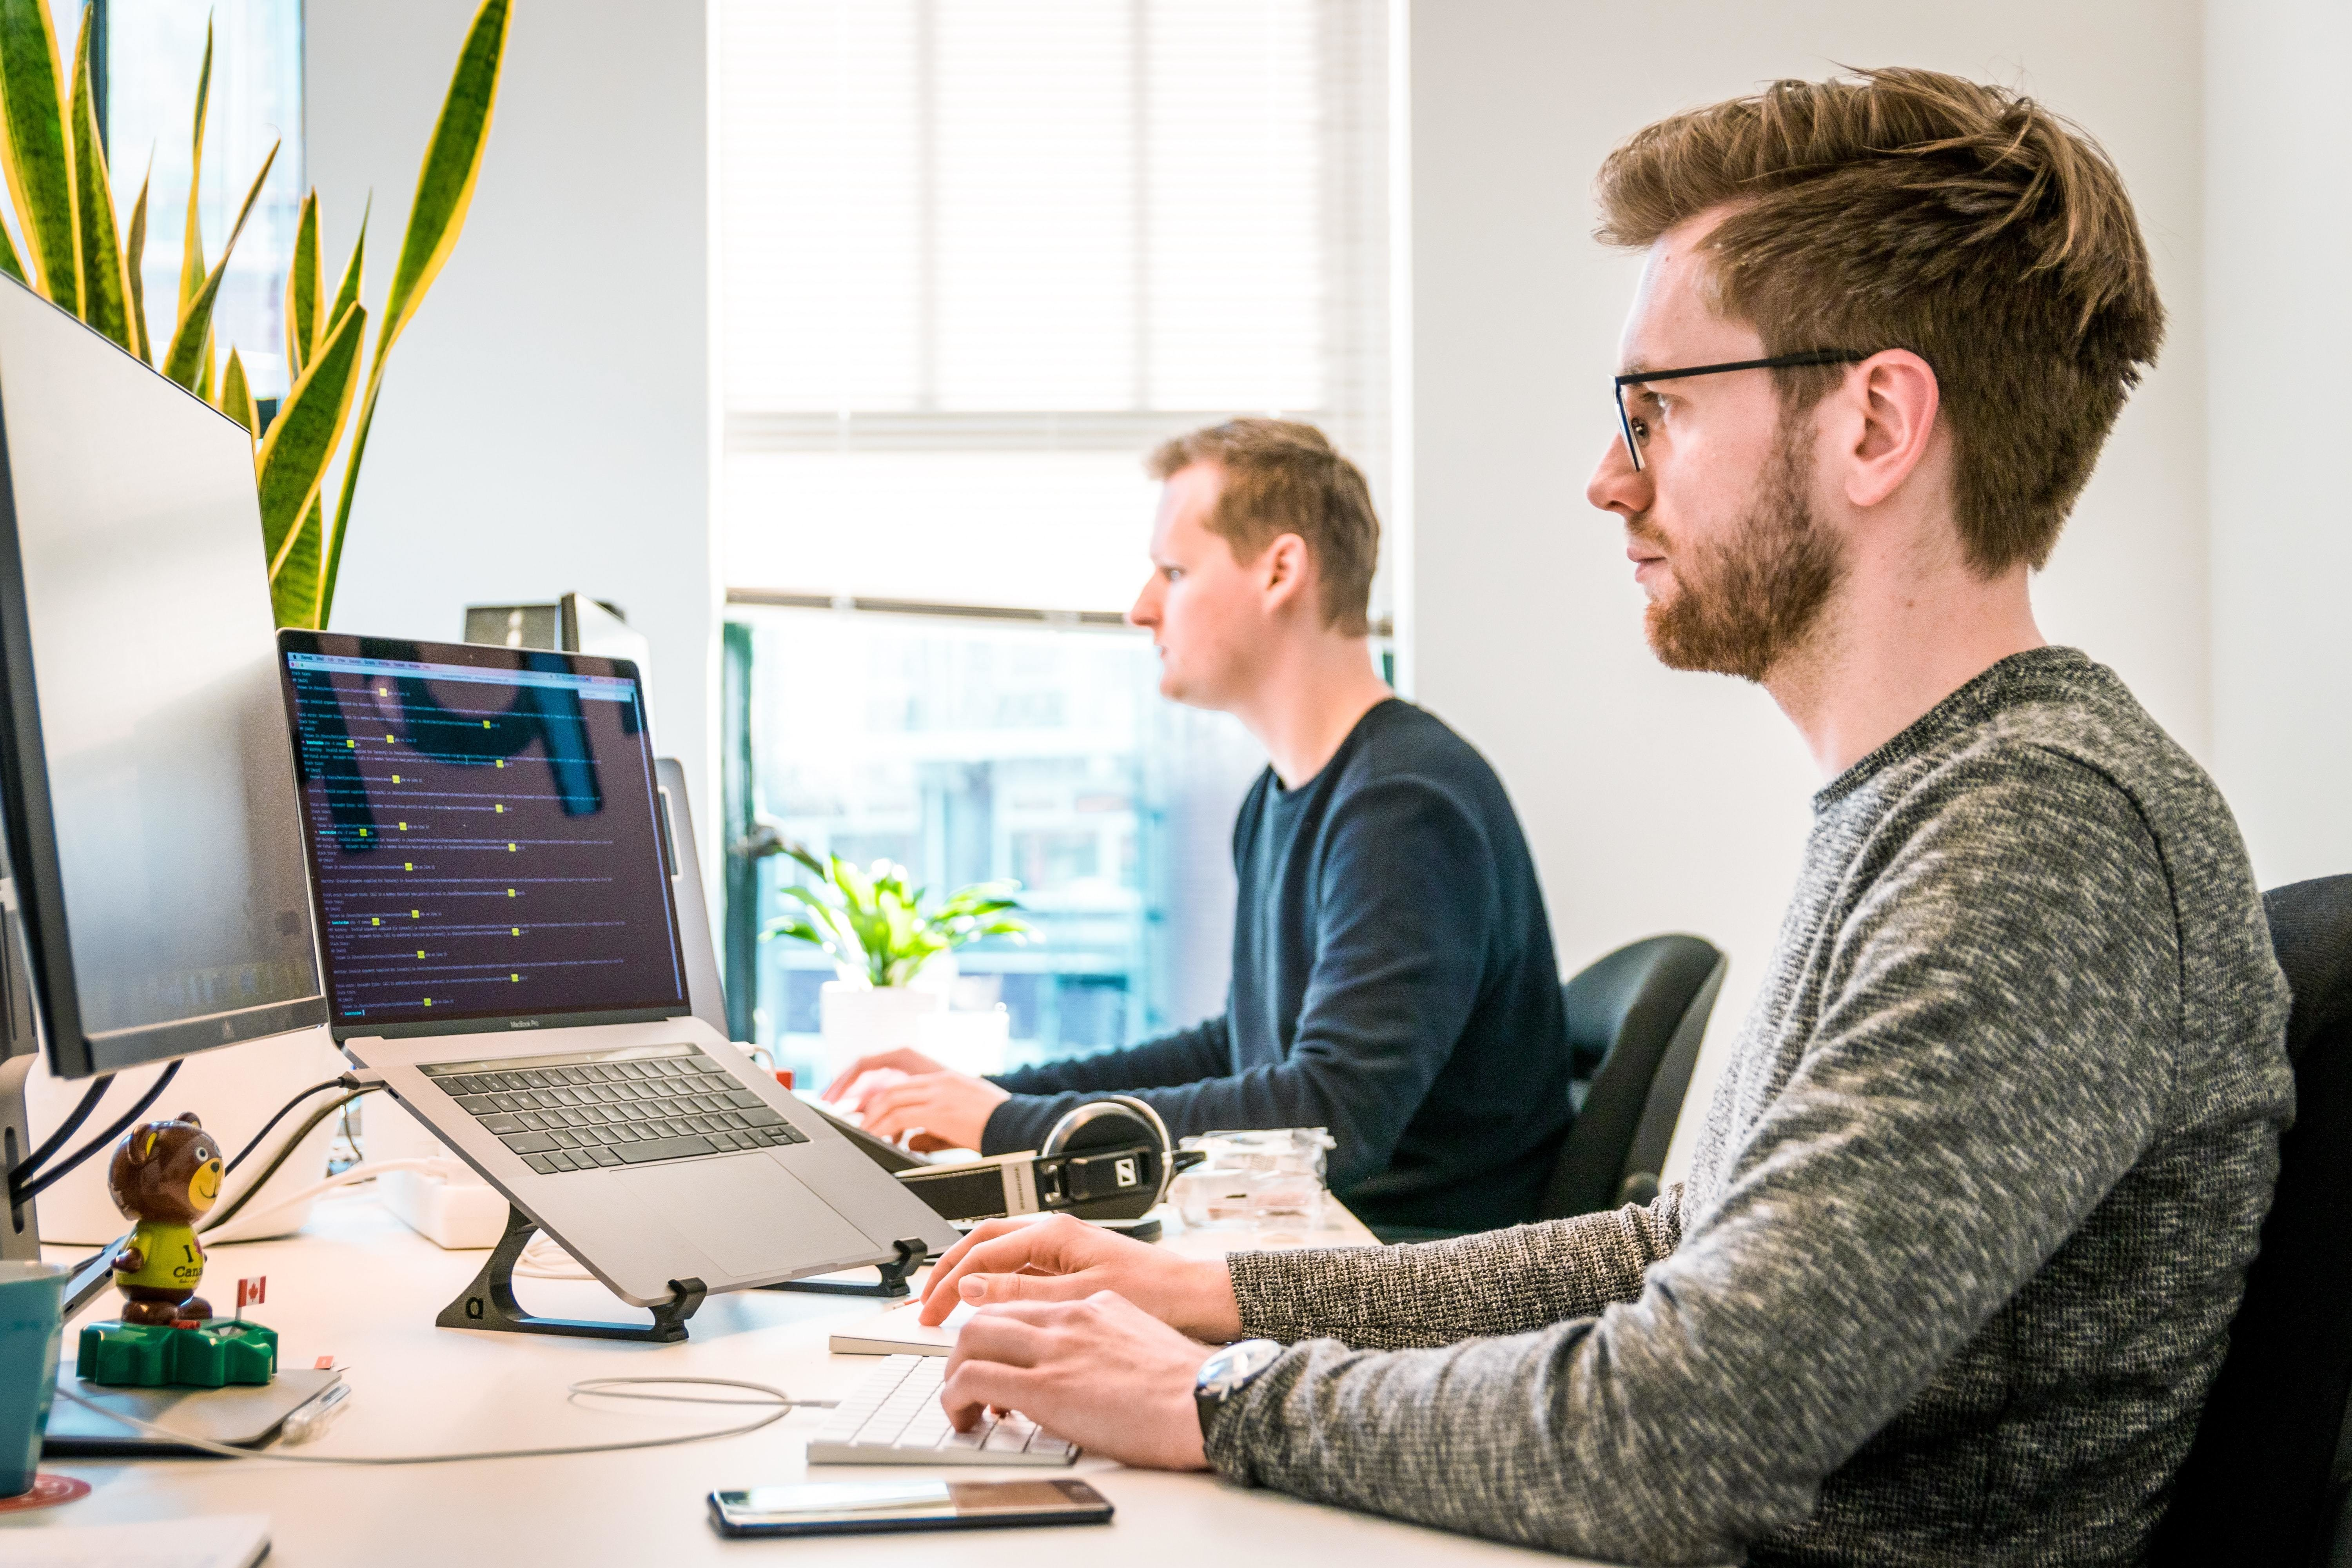 image of two men working in an office